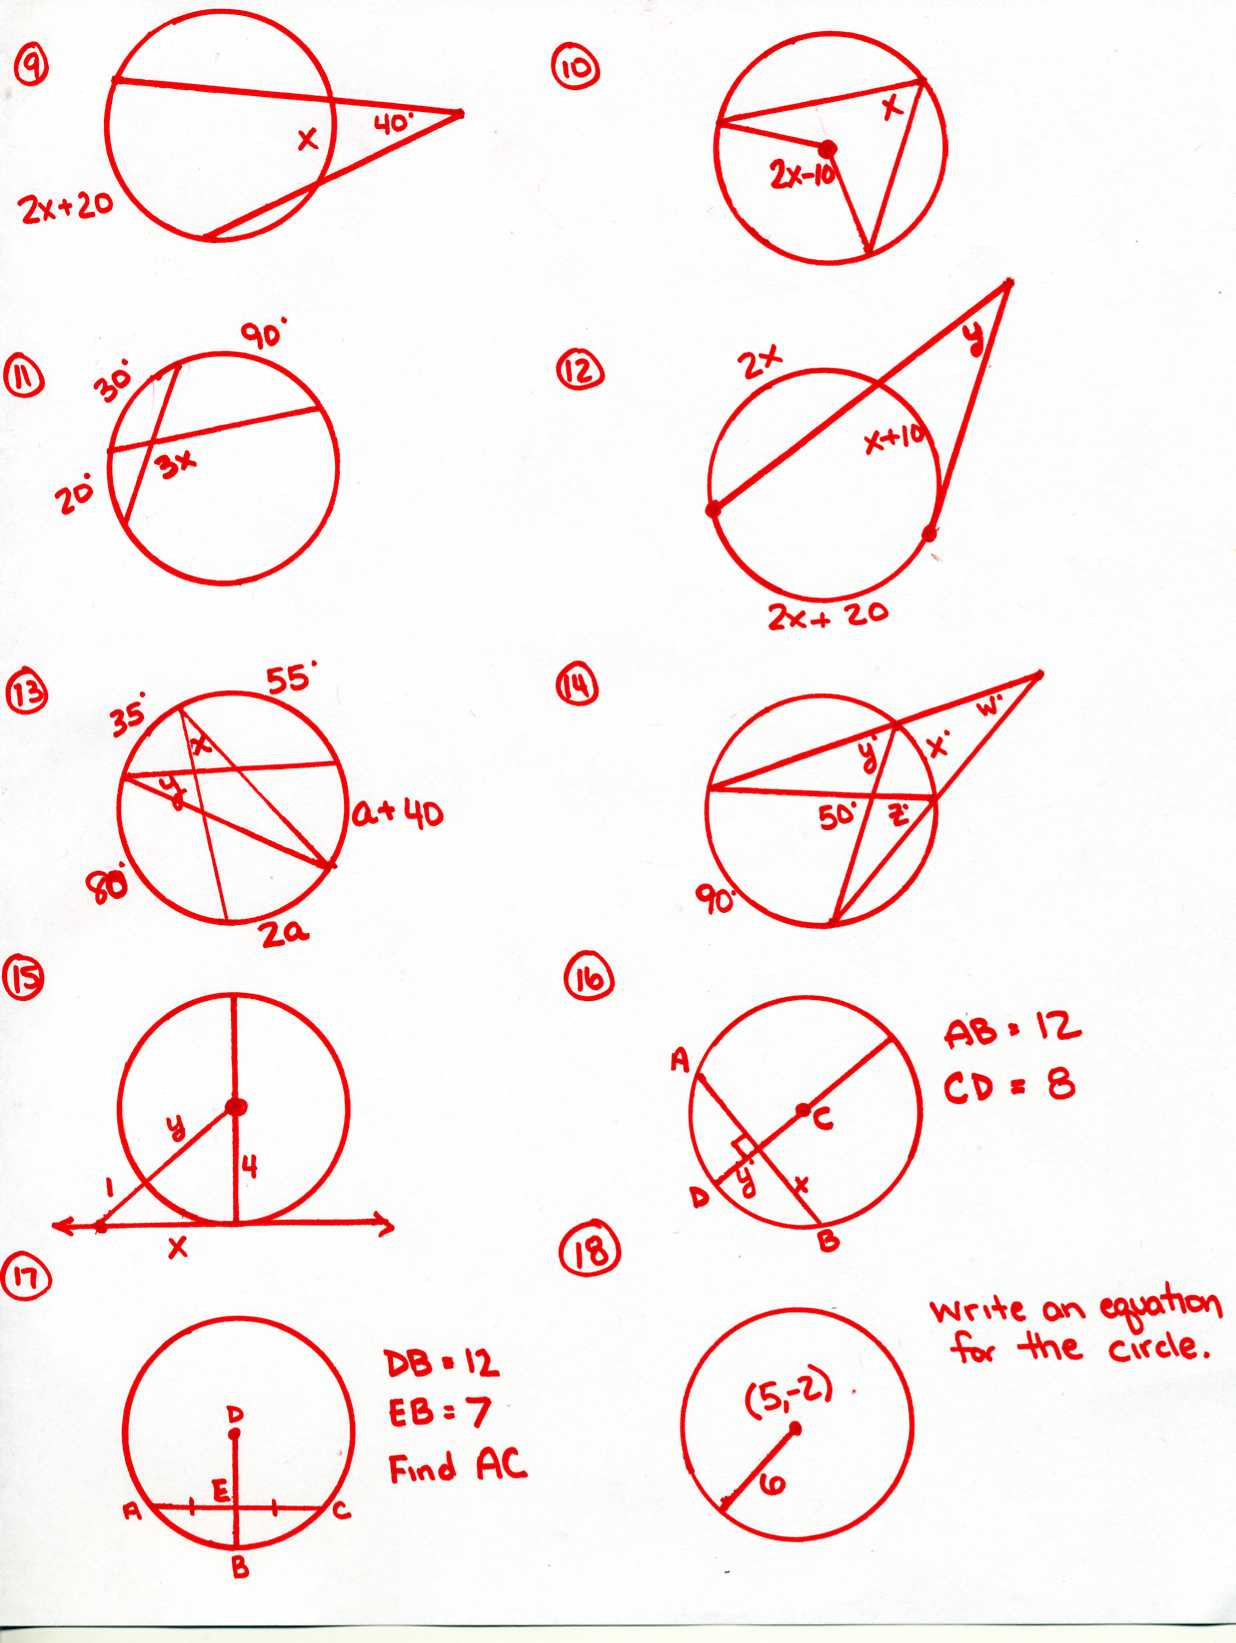 Geometry Worksheets 10th Grade Circle theorems Homework Geometry Worksheets Grade Ch